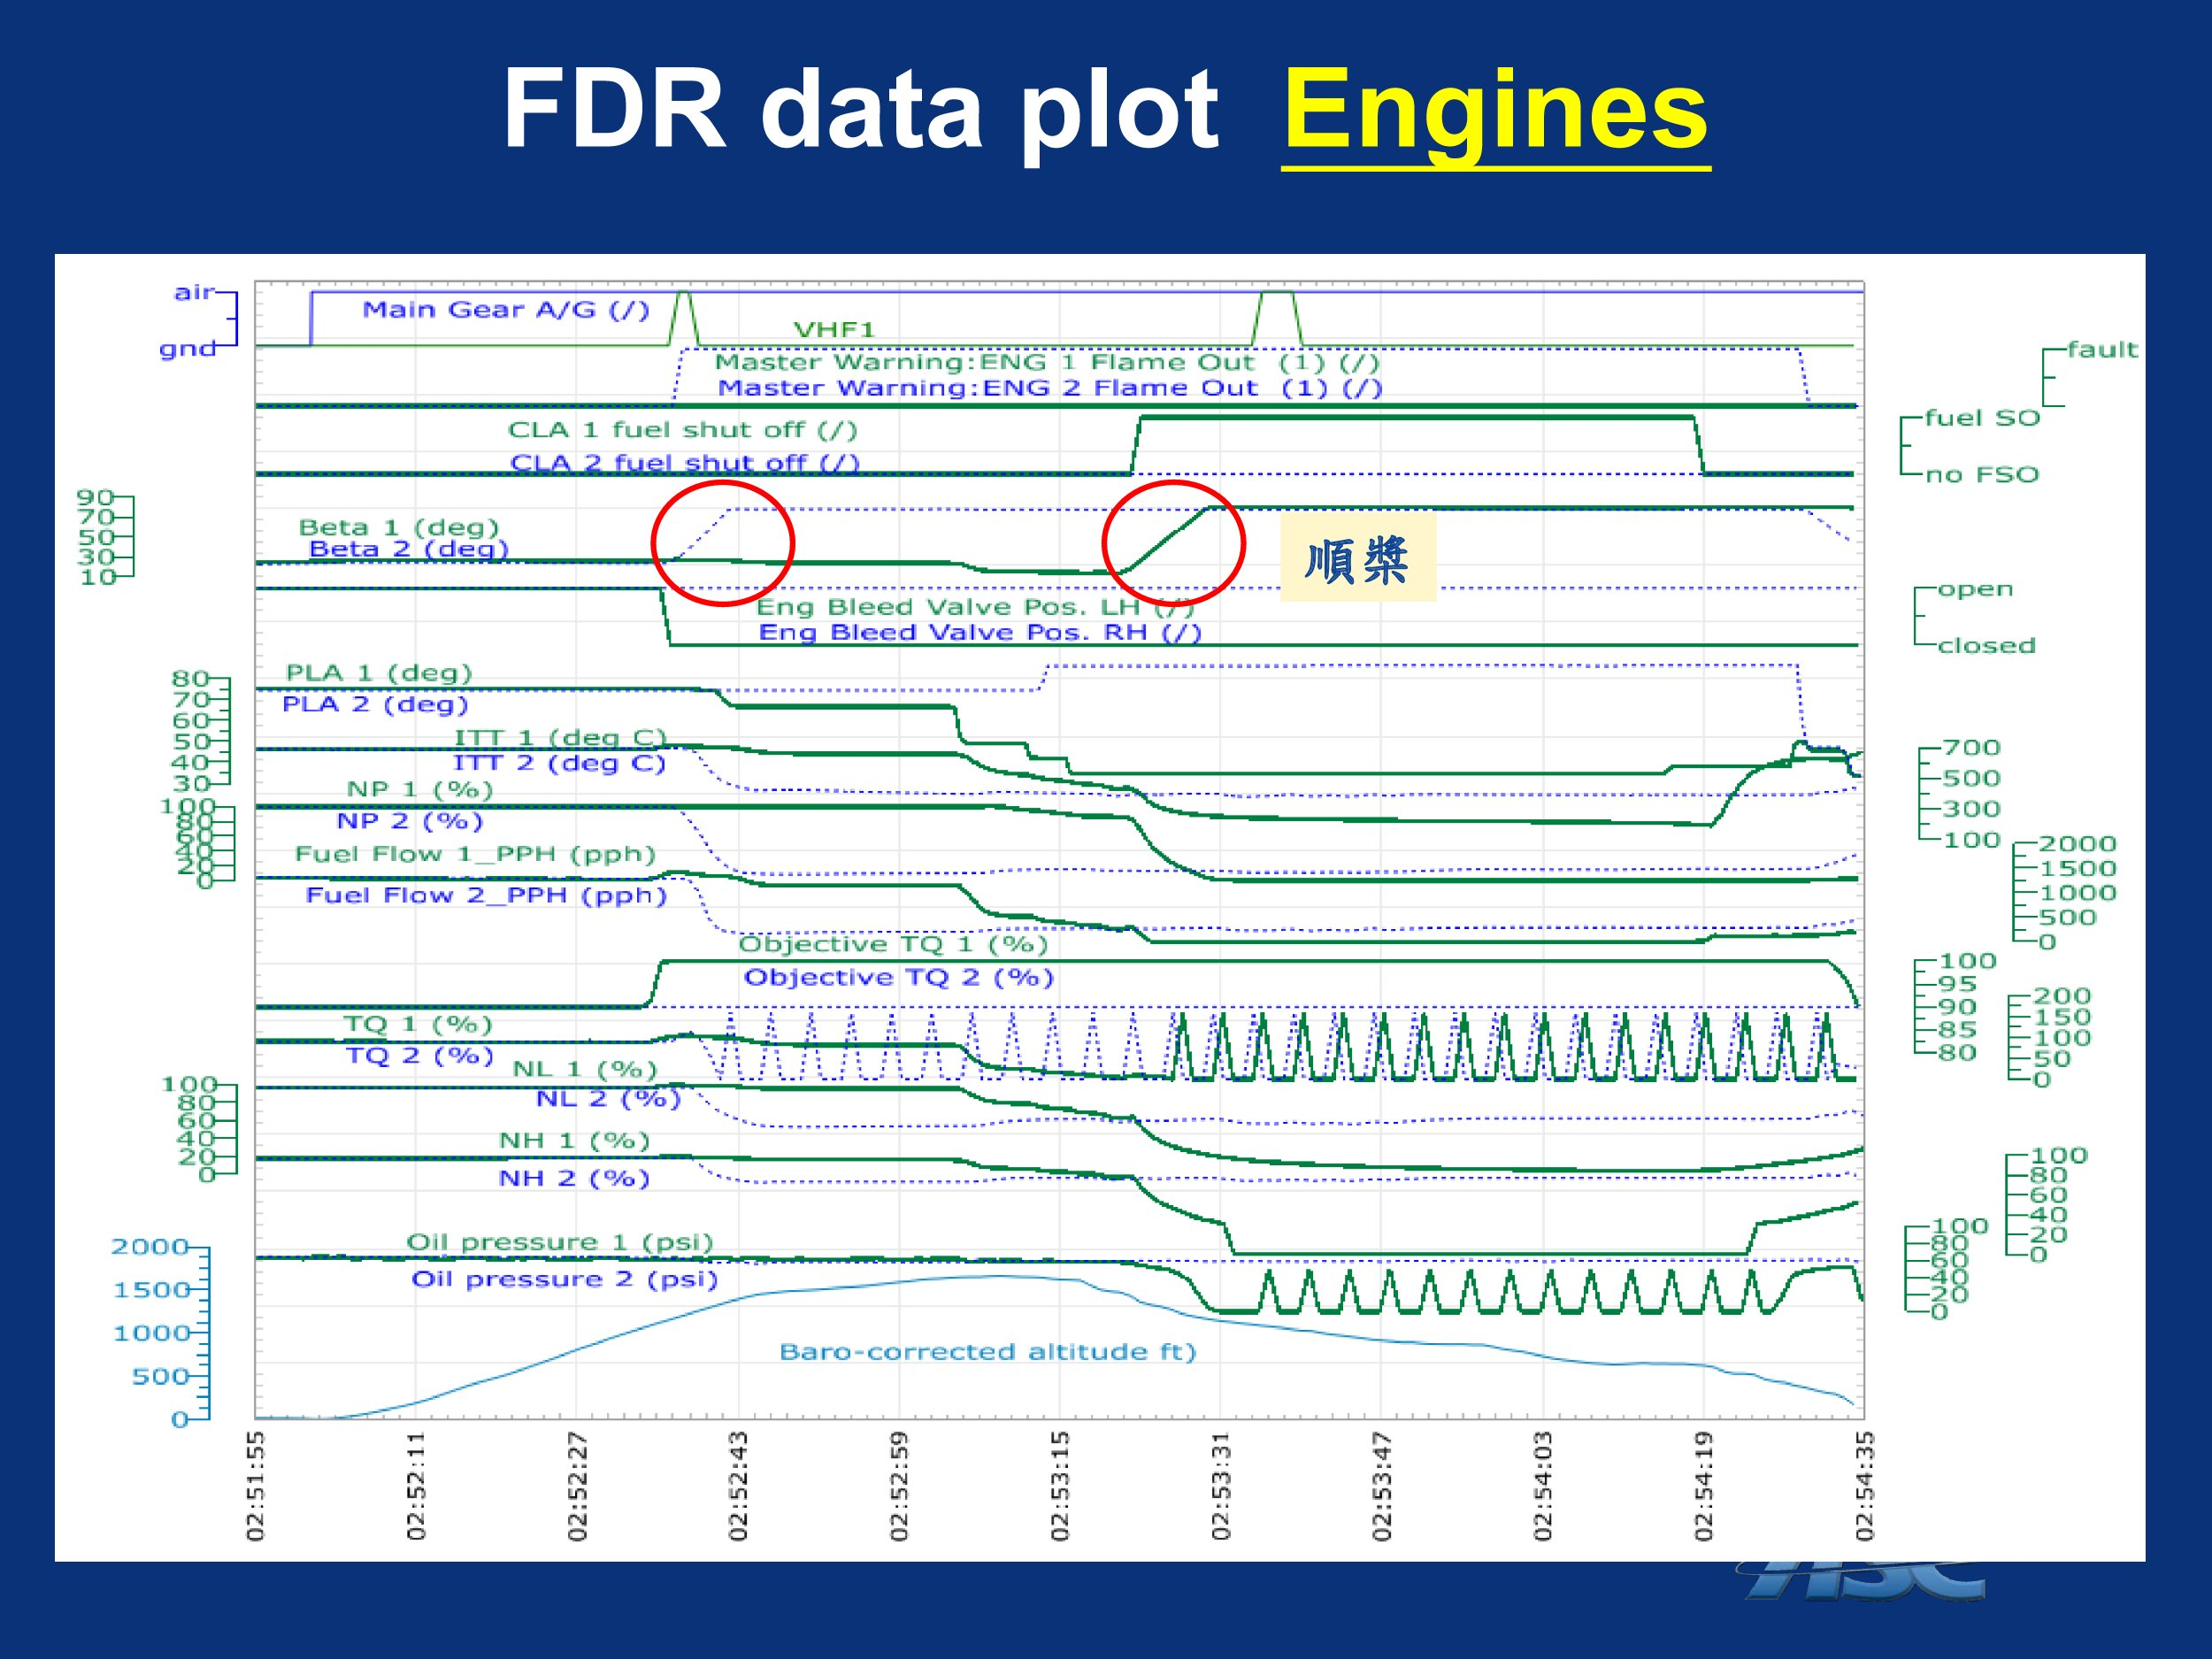 TransAsia GE235 Accident - Taxi,  Transmission Lines and FDR details